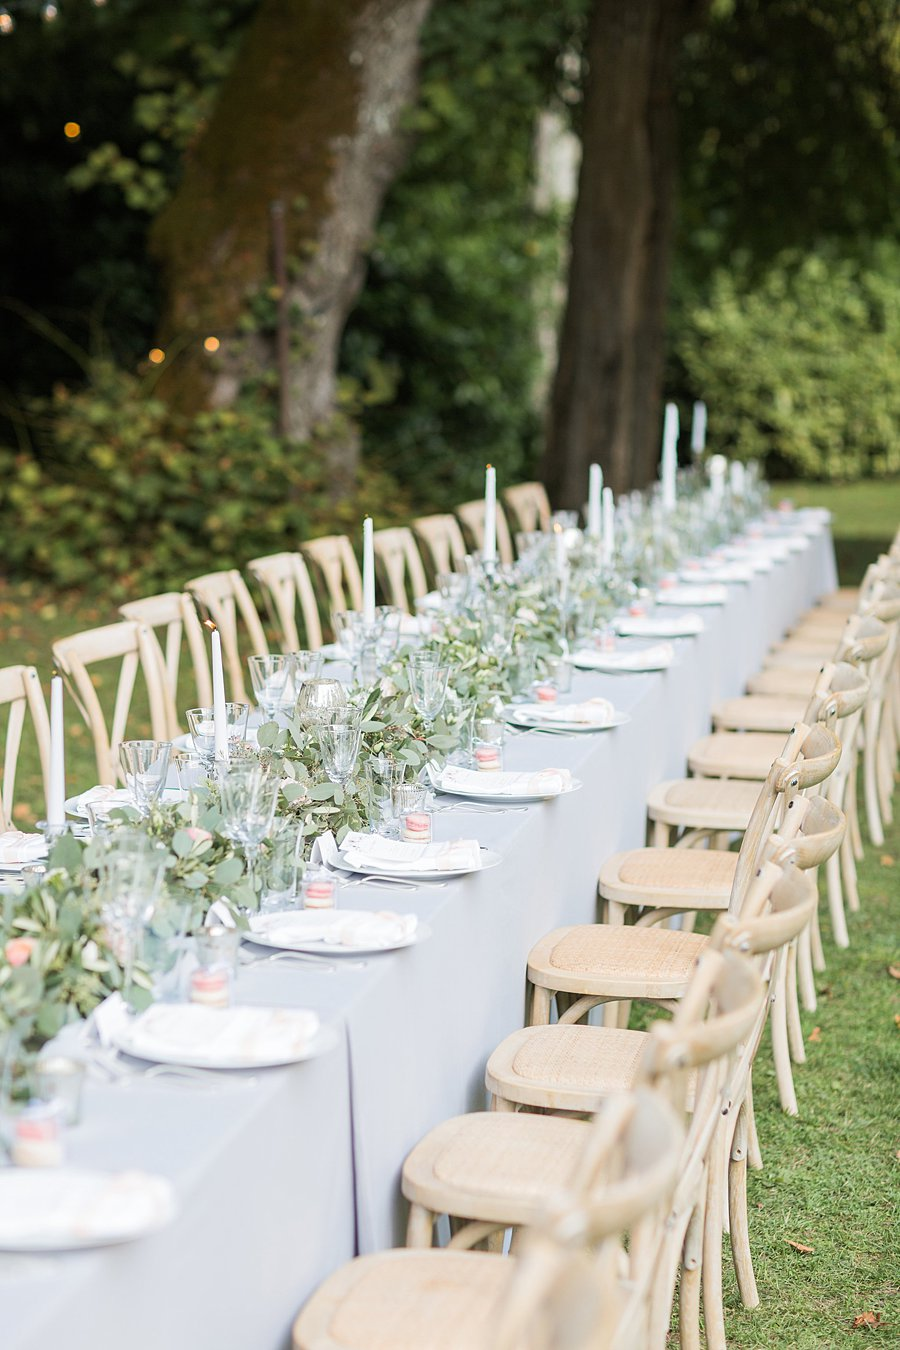 Charming South of France Chateau Wedding with Jenny Packham Bride ...